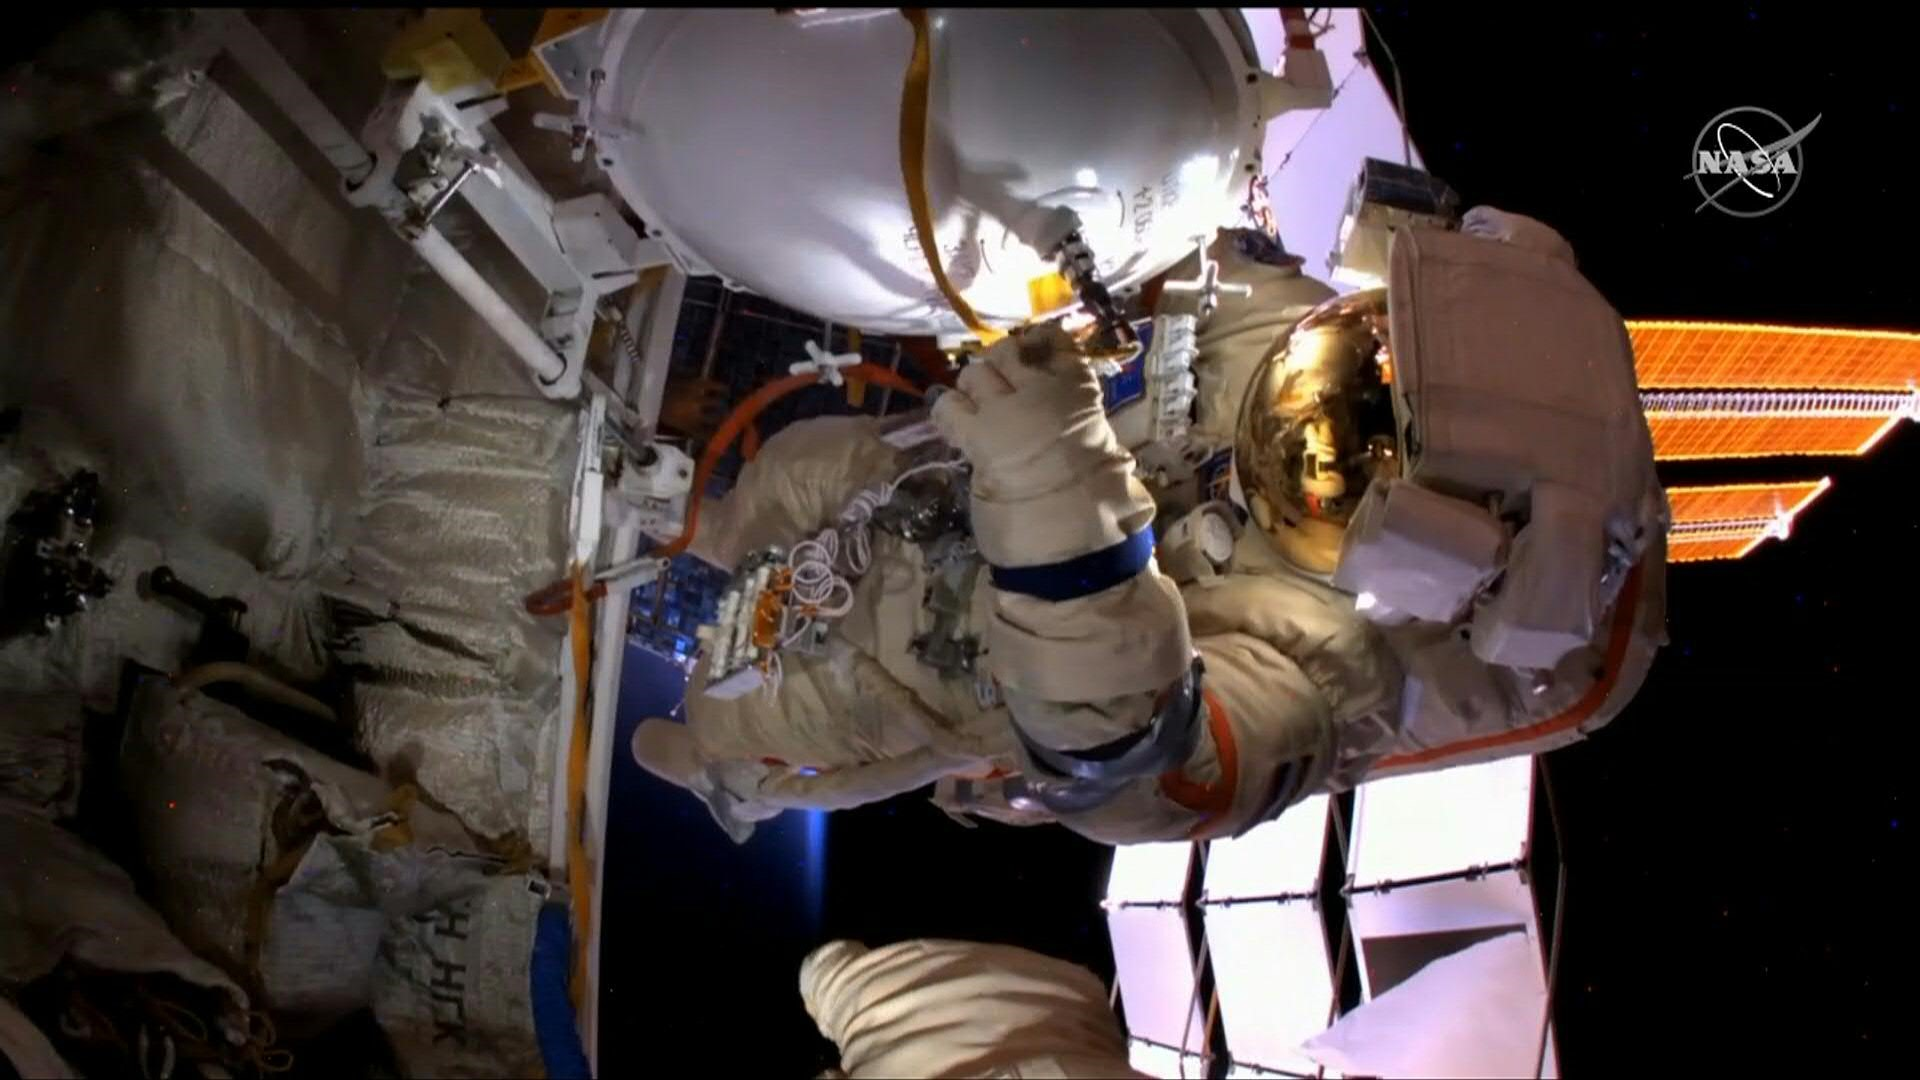 Cosmonauts conduct spacewalk from the ISS